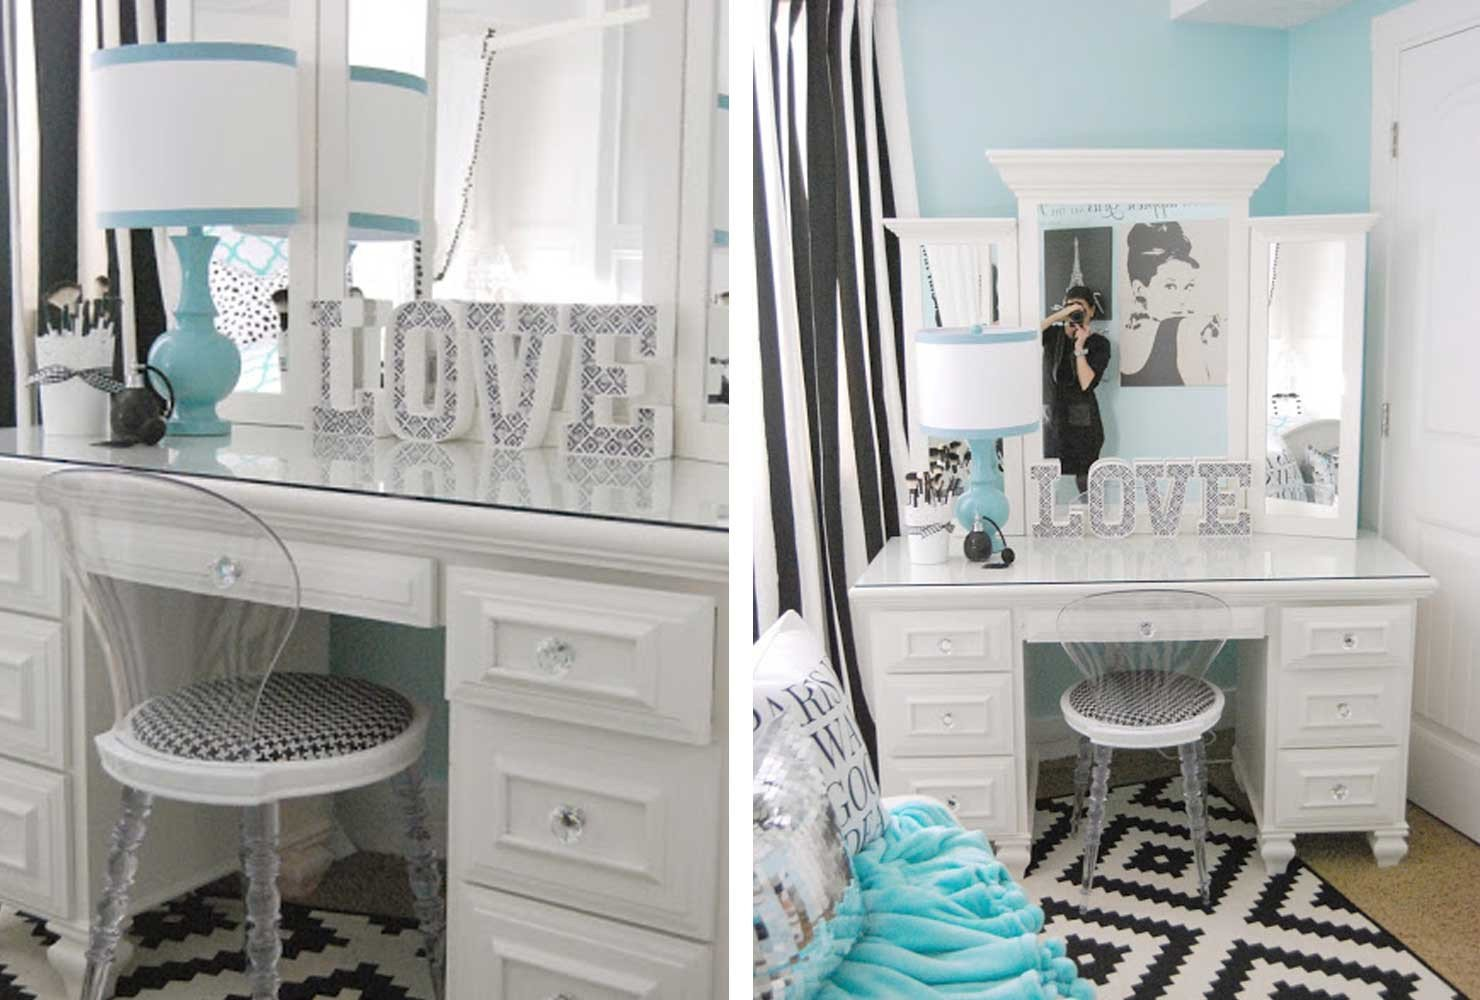 Diy Room Decor for Teens Fresh 26 Diy Teen Room Decor Ideas to Personalize Any Space